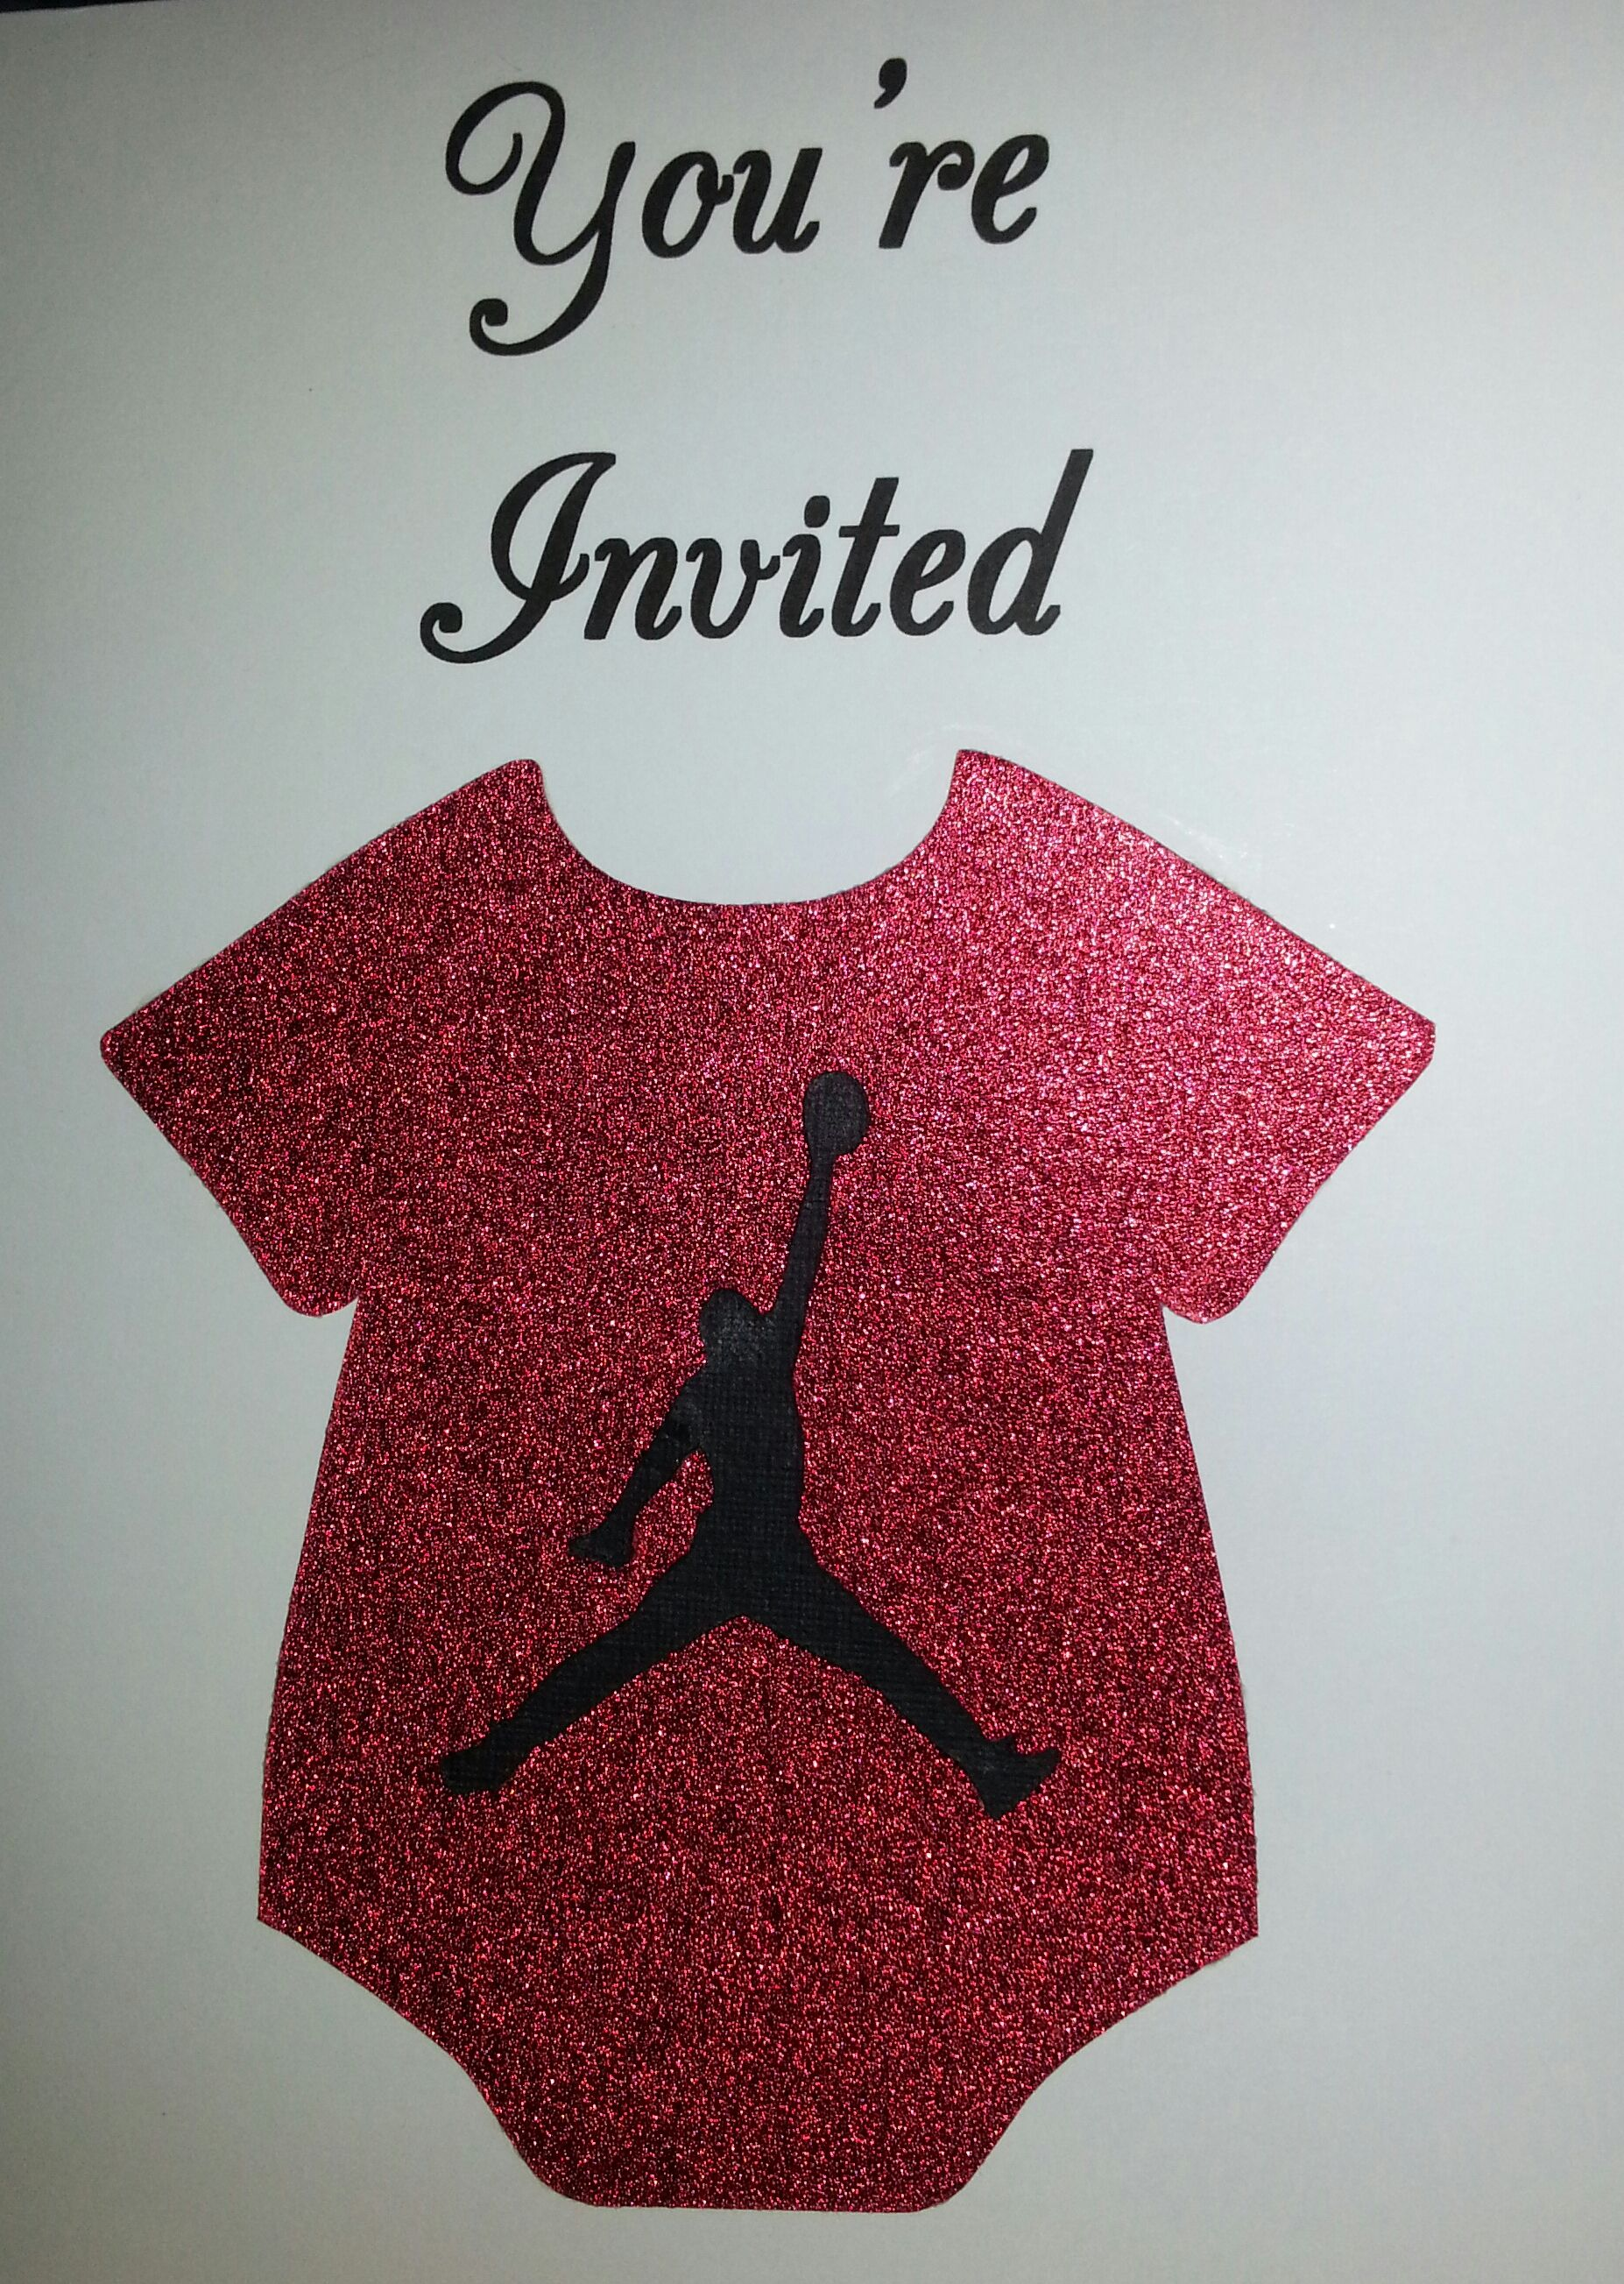 Jordan theme invite 2 red sparkle onesie cutout with jumpman babyshower jordan theme invite 2 red sparkle onesie cutout with jumpman symbol buycottarizona Gallery